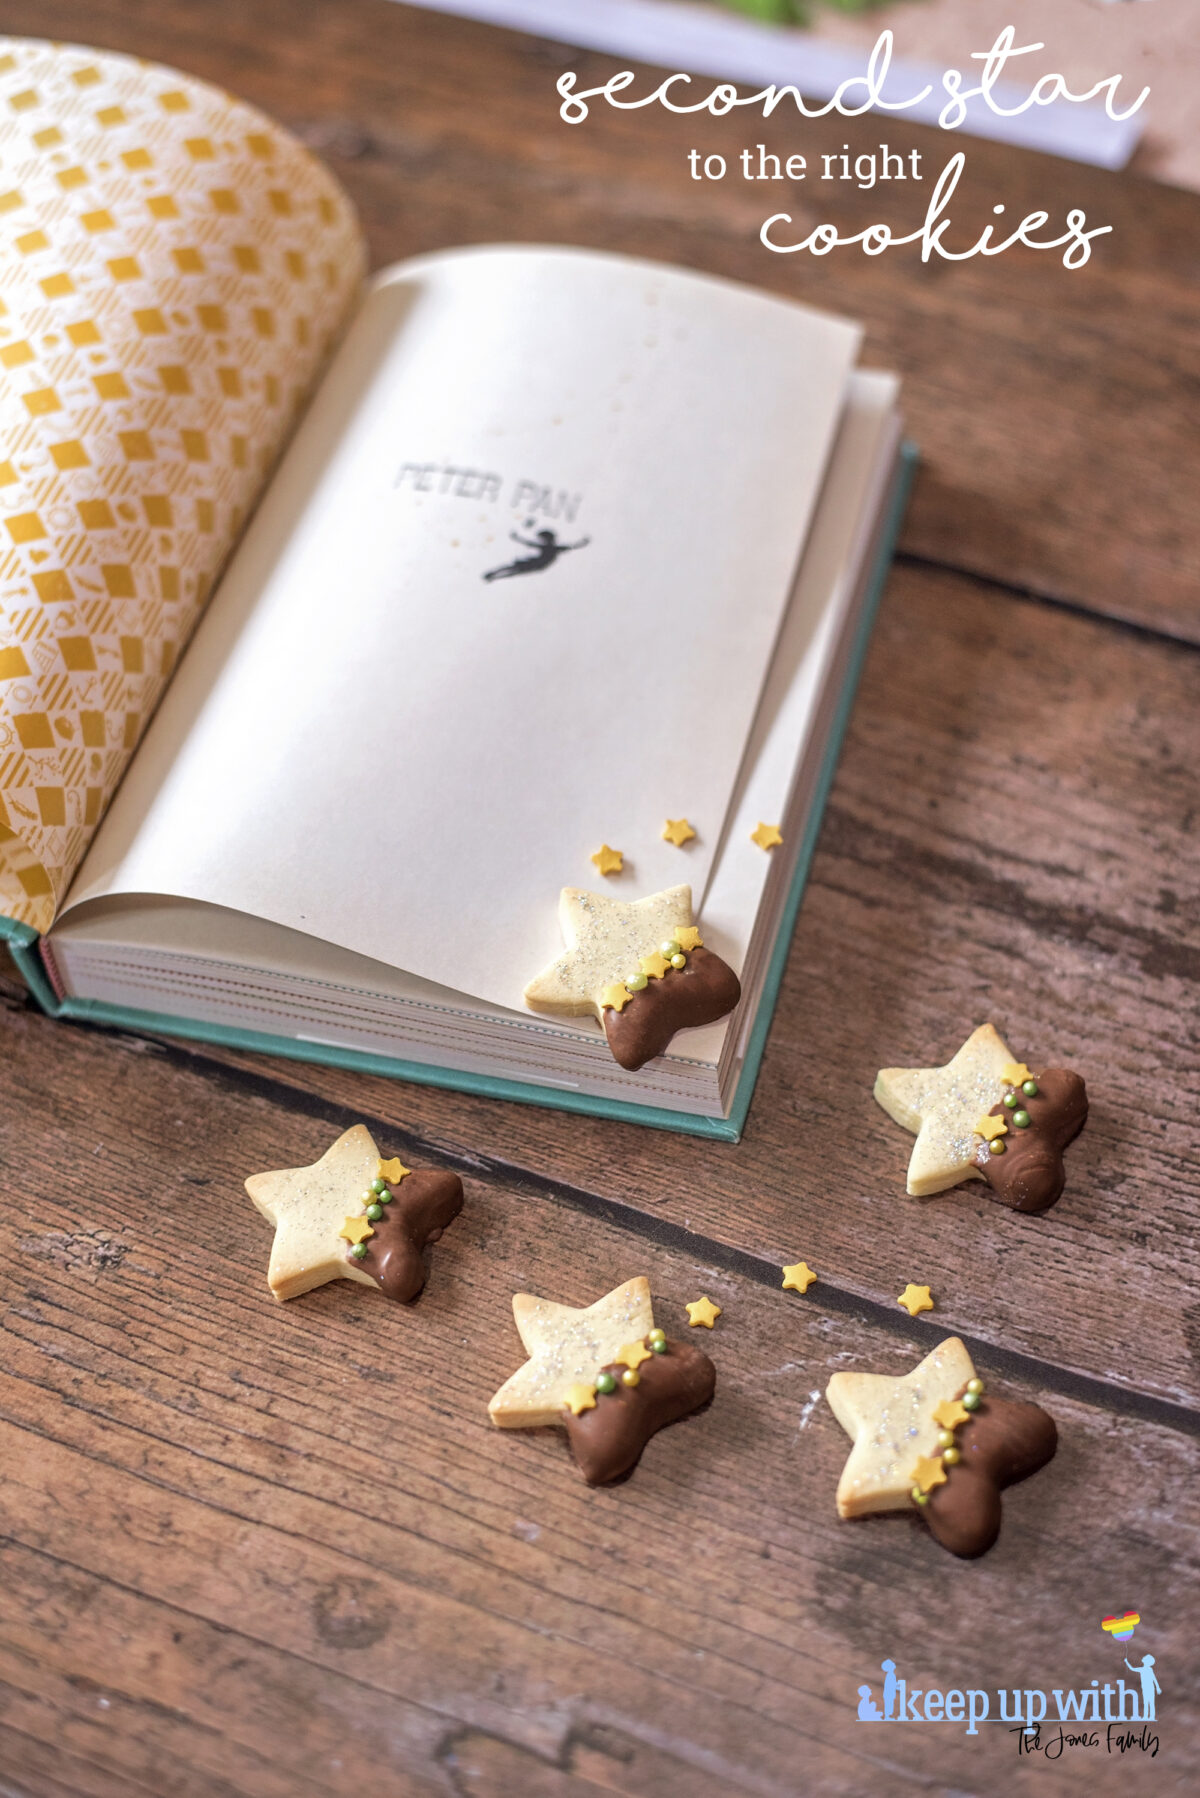 Image shows a wooden tabletop with a copy of J M Barrie's Peter Pan open. On the book pages and the table are small star shaped biscuits. Half of each Peter Pan Second Star to the Right biscuit is dipped in chocolate and  the other is sprinkled with silver edible glitter.  The dividing line is decorated with yellow star sprinkles and green pearl shaped sprinkles. Image by Keep Up With The Jones Family